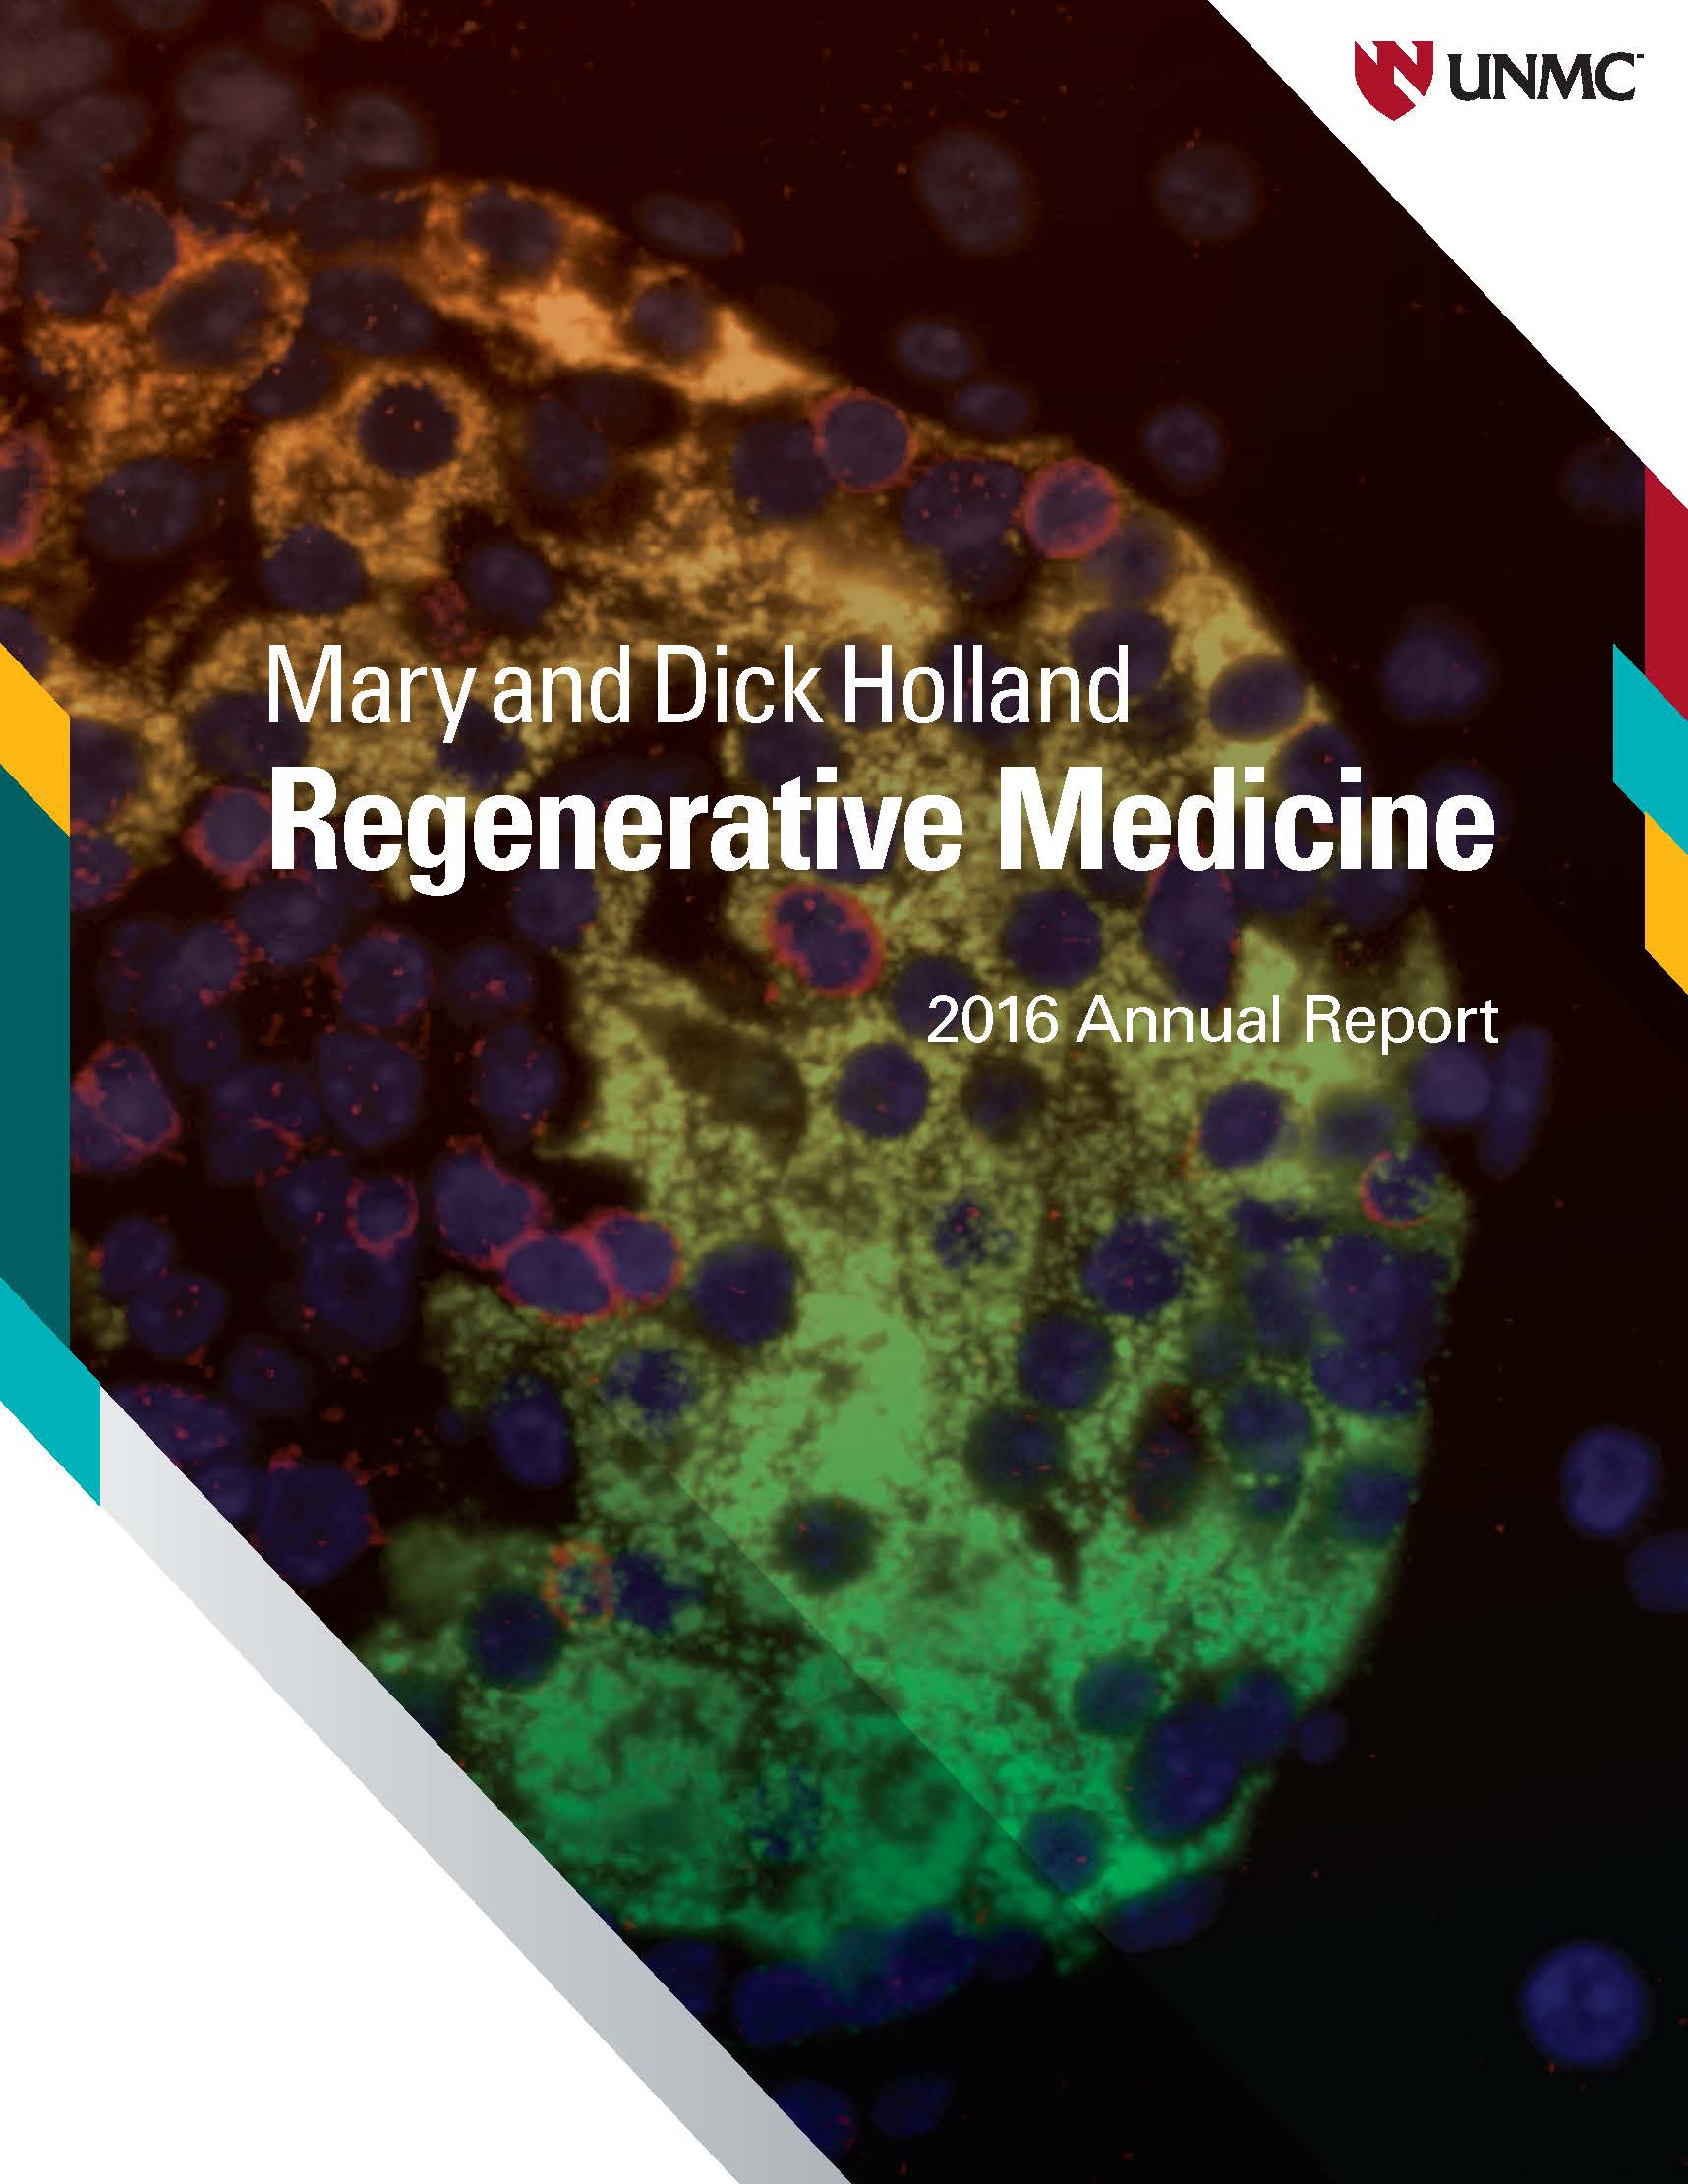 News | Regenerative Medicine | University of Nebraska Medical Center